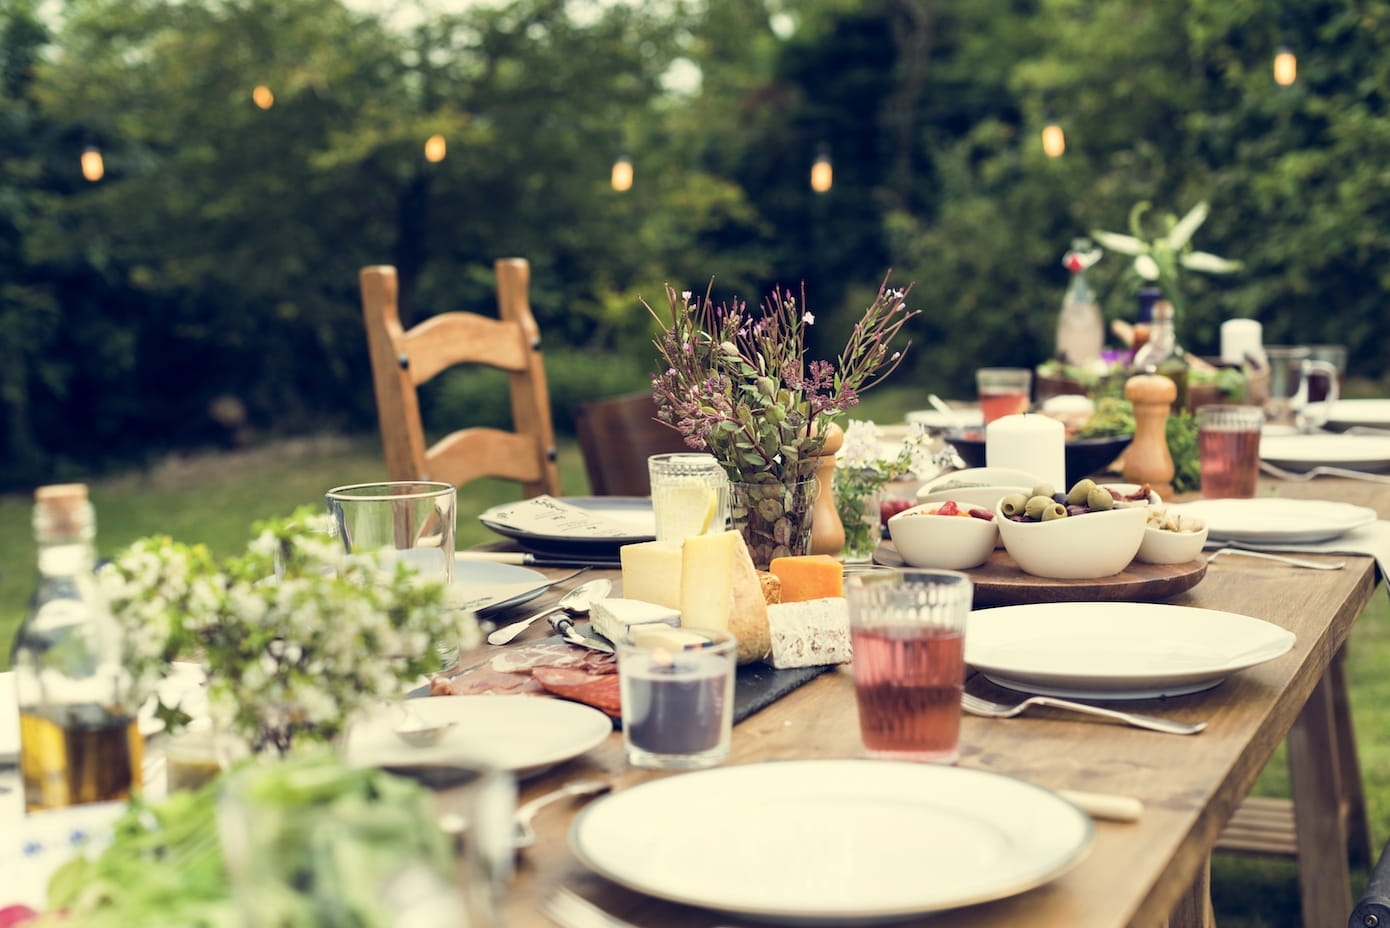 Rustic outdoor table setting for party